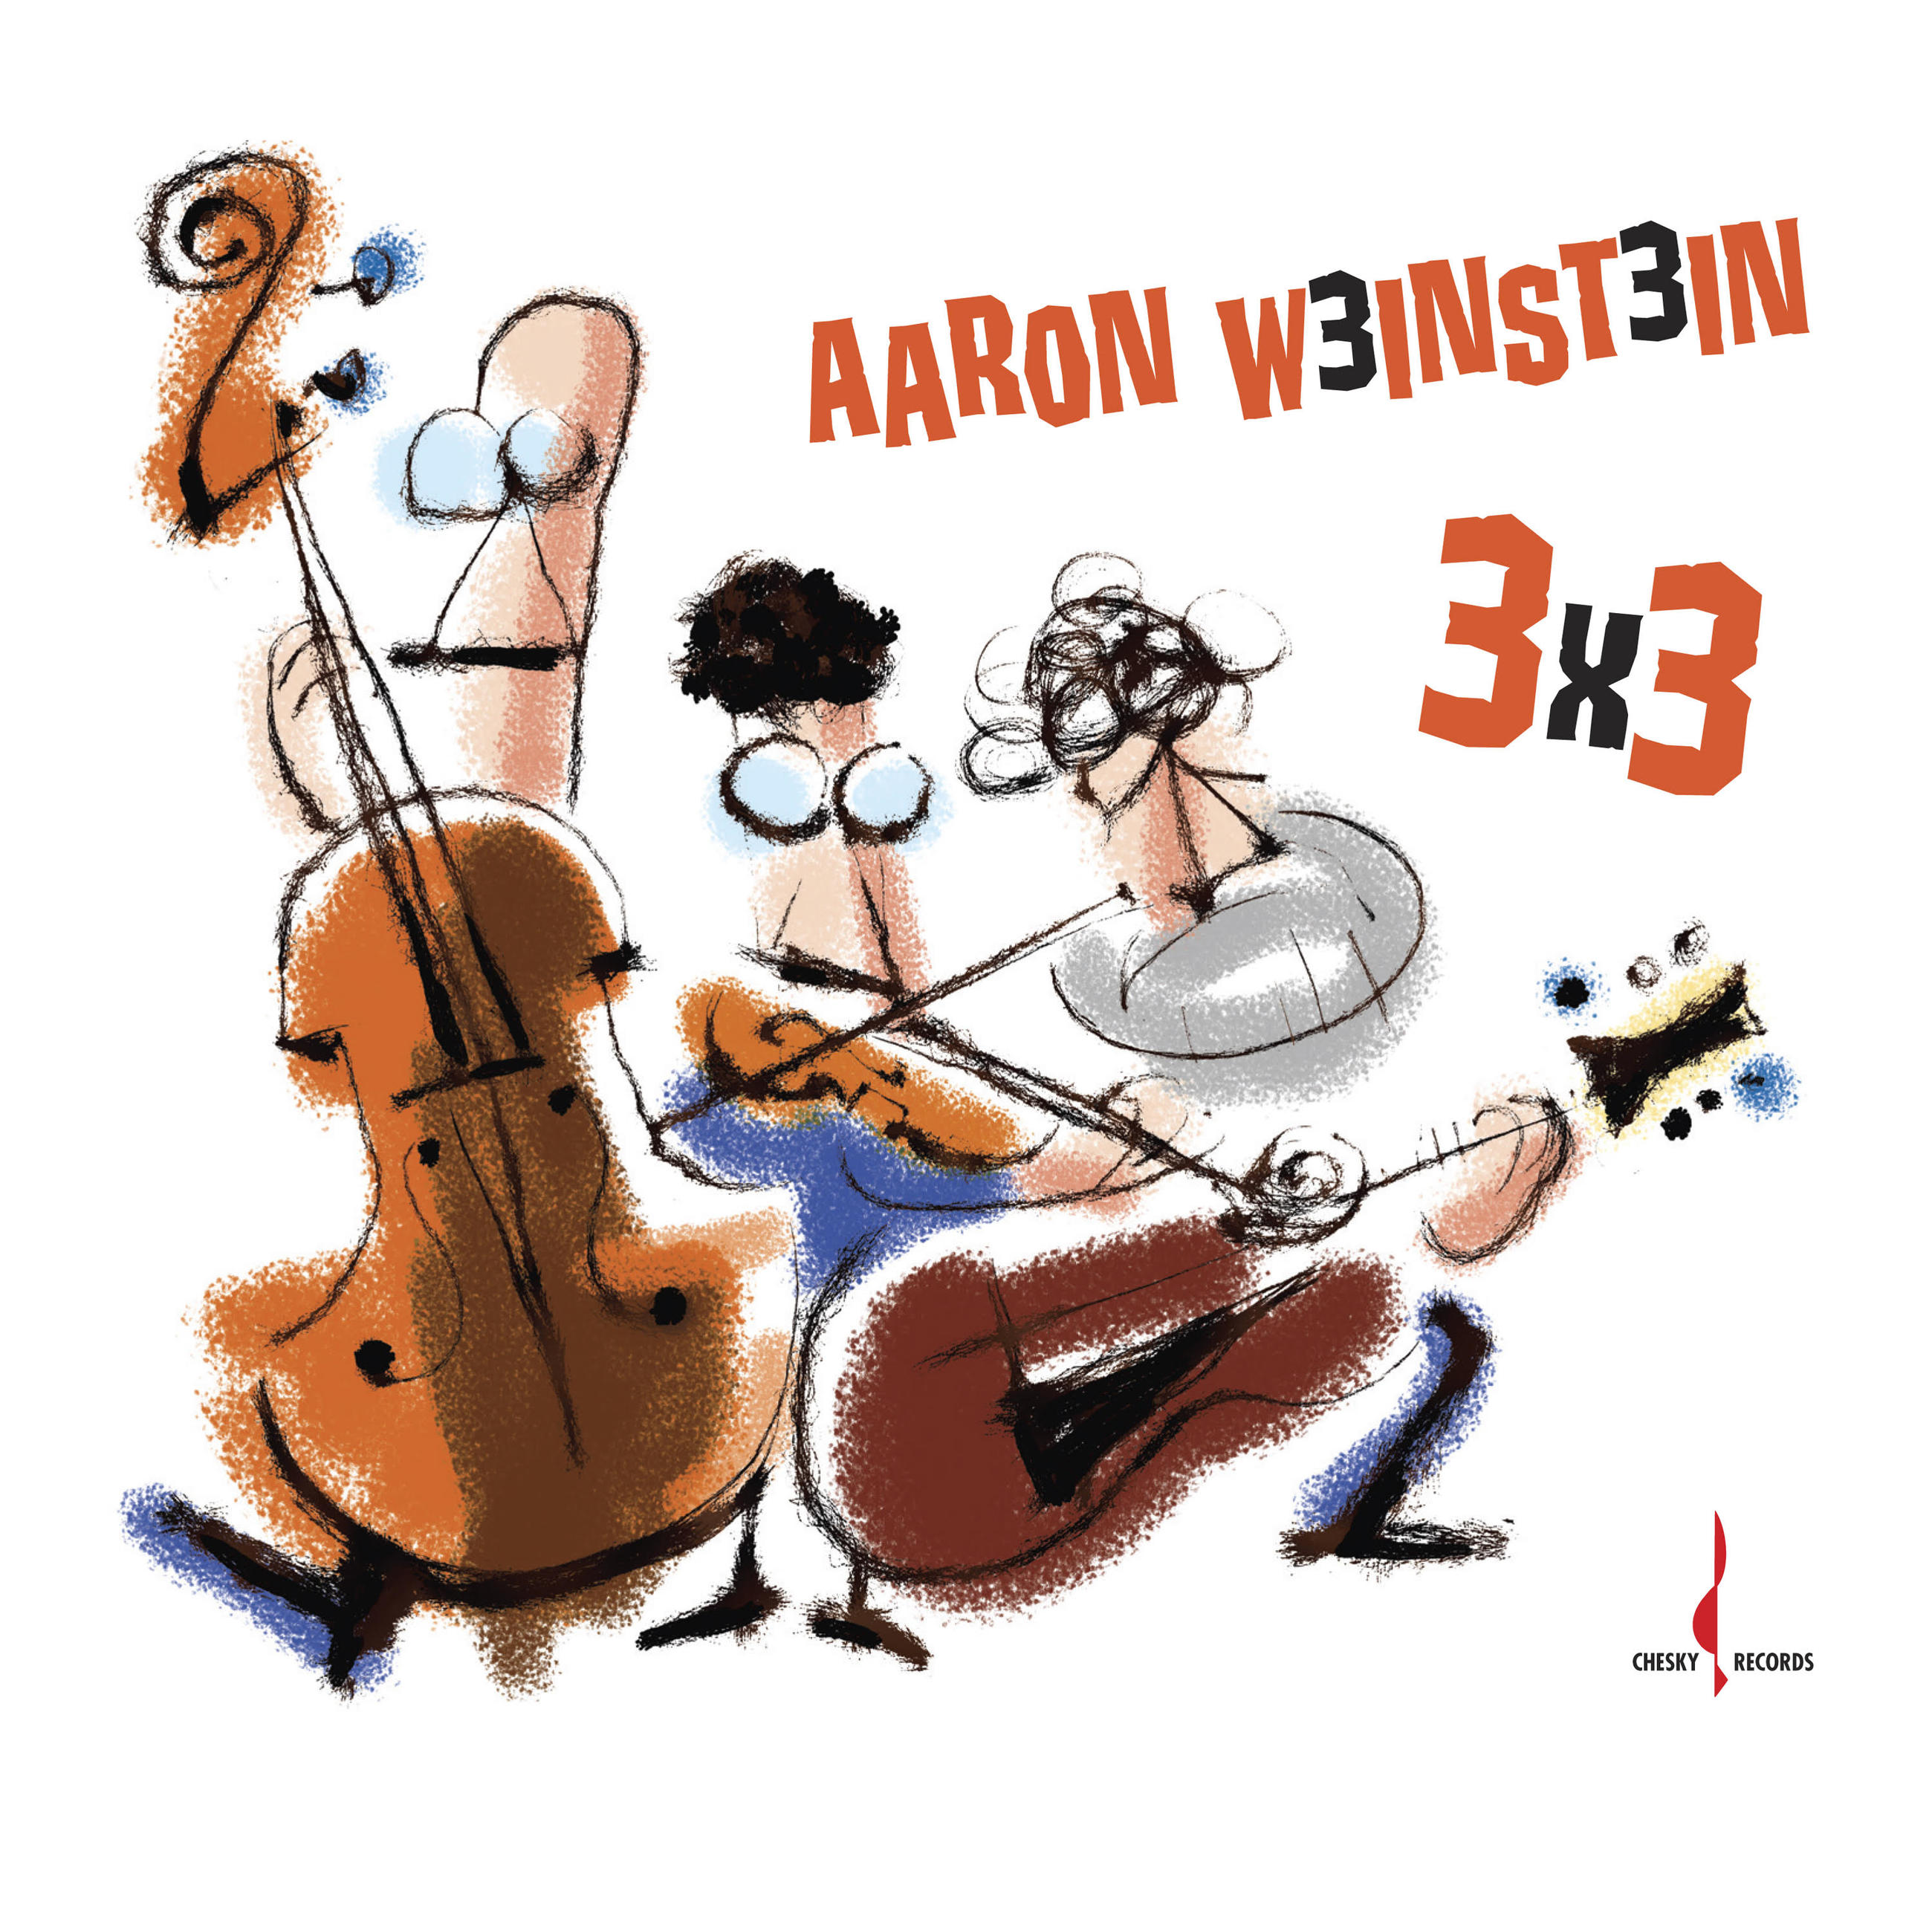 Fiddling with Mandolin on Aaron Weinstein's Chesky Jazz Debut 3x3